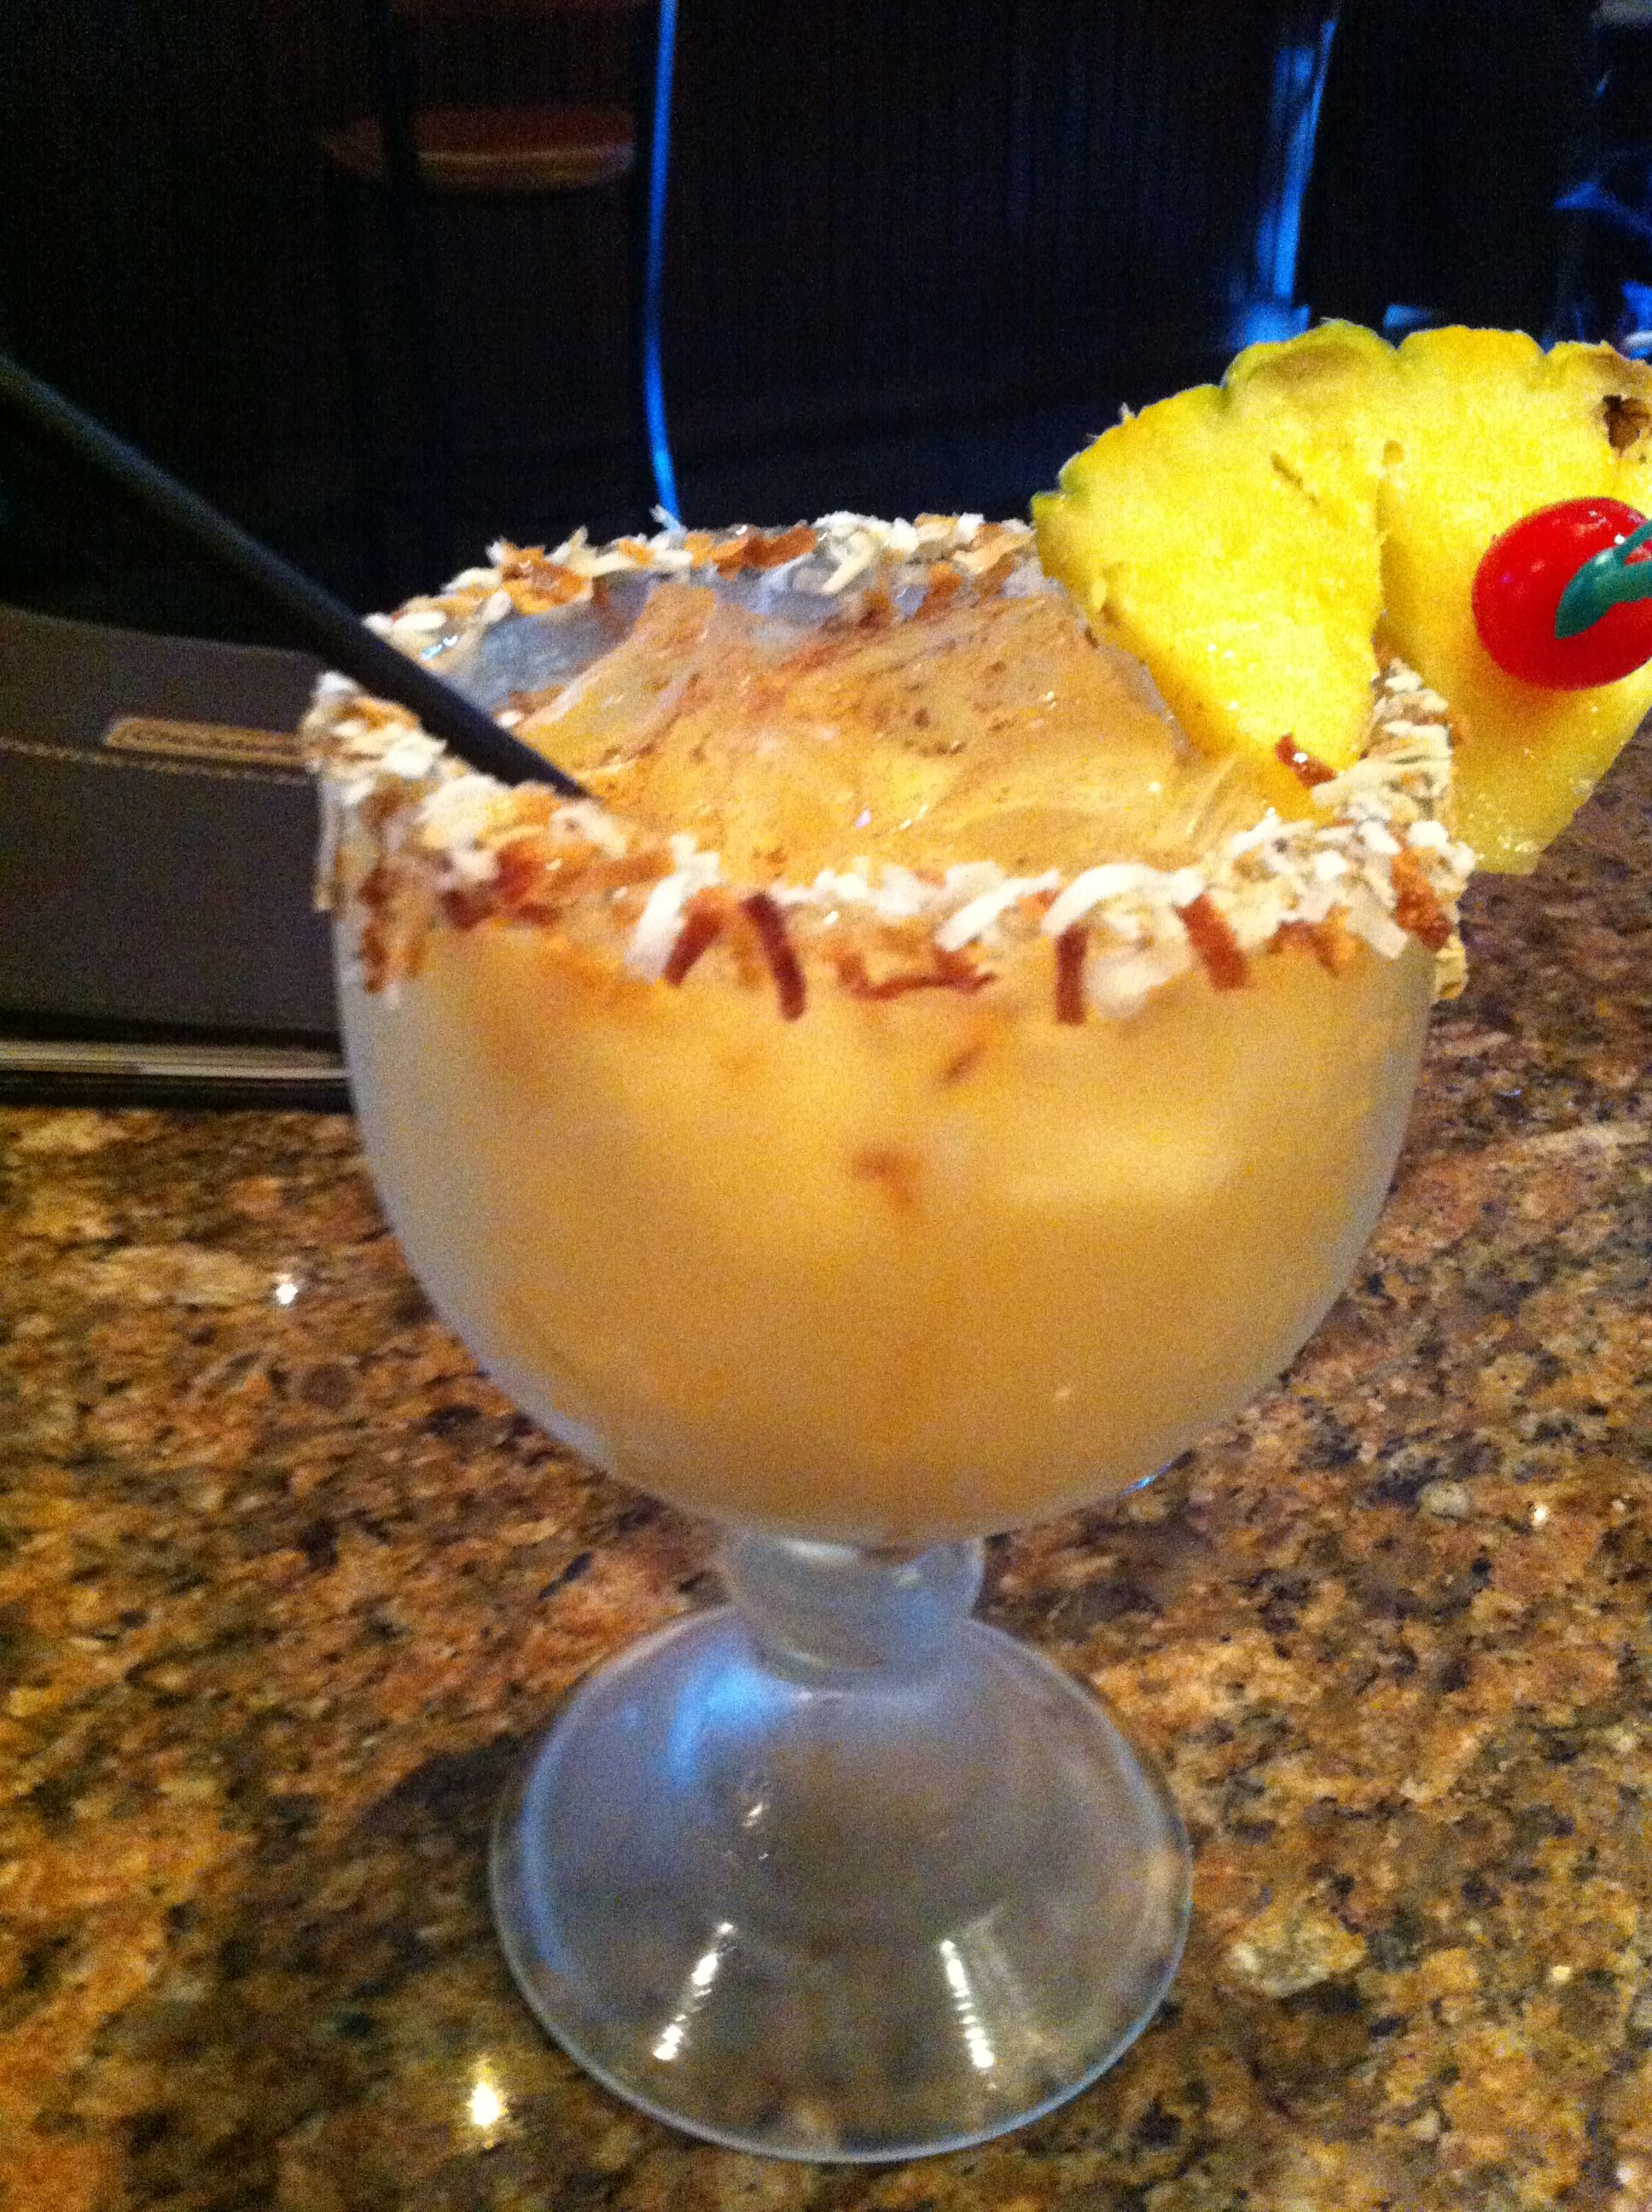 The Pain Killer from Cheddar's.   Painkiller drink recipe: Ingredients: 2 ounces Pusser's dark rum, 1 ounce cream of coconut, 4 ounces pineapple juice, 1 ounce orange juice, nutmeg. Directions: 1. Shake or stir ingredients, and pour over ice in a tall glass. Sprinkle nutmeg on top, and serve.